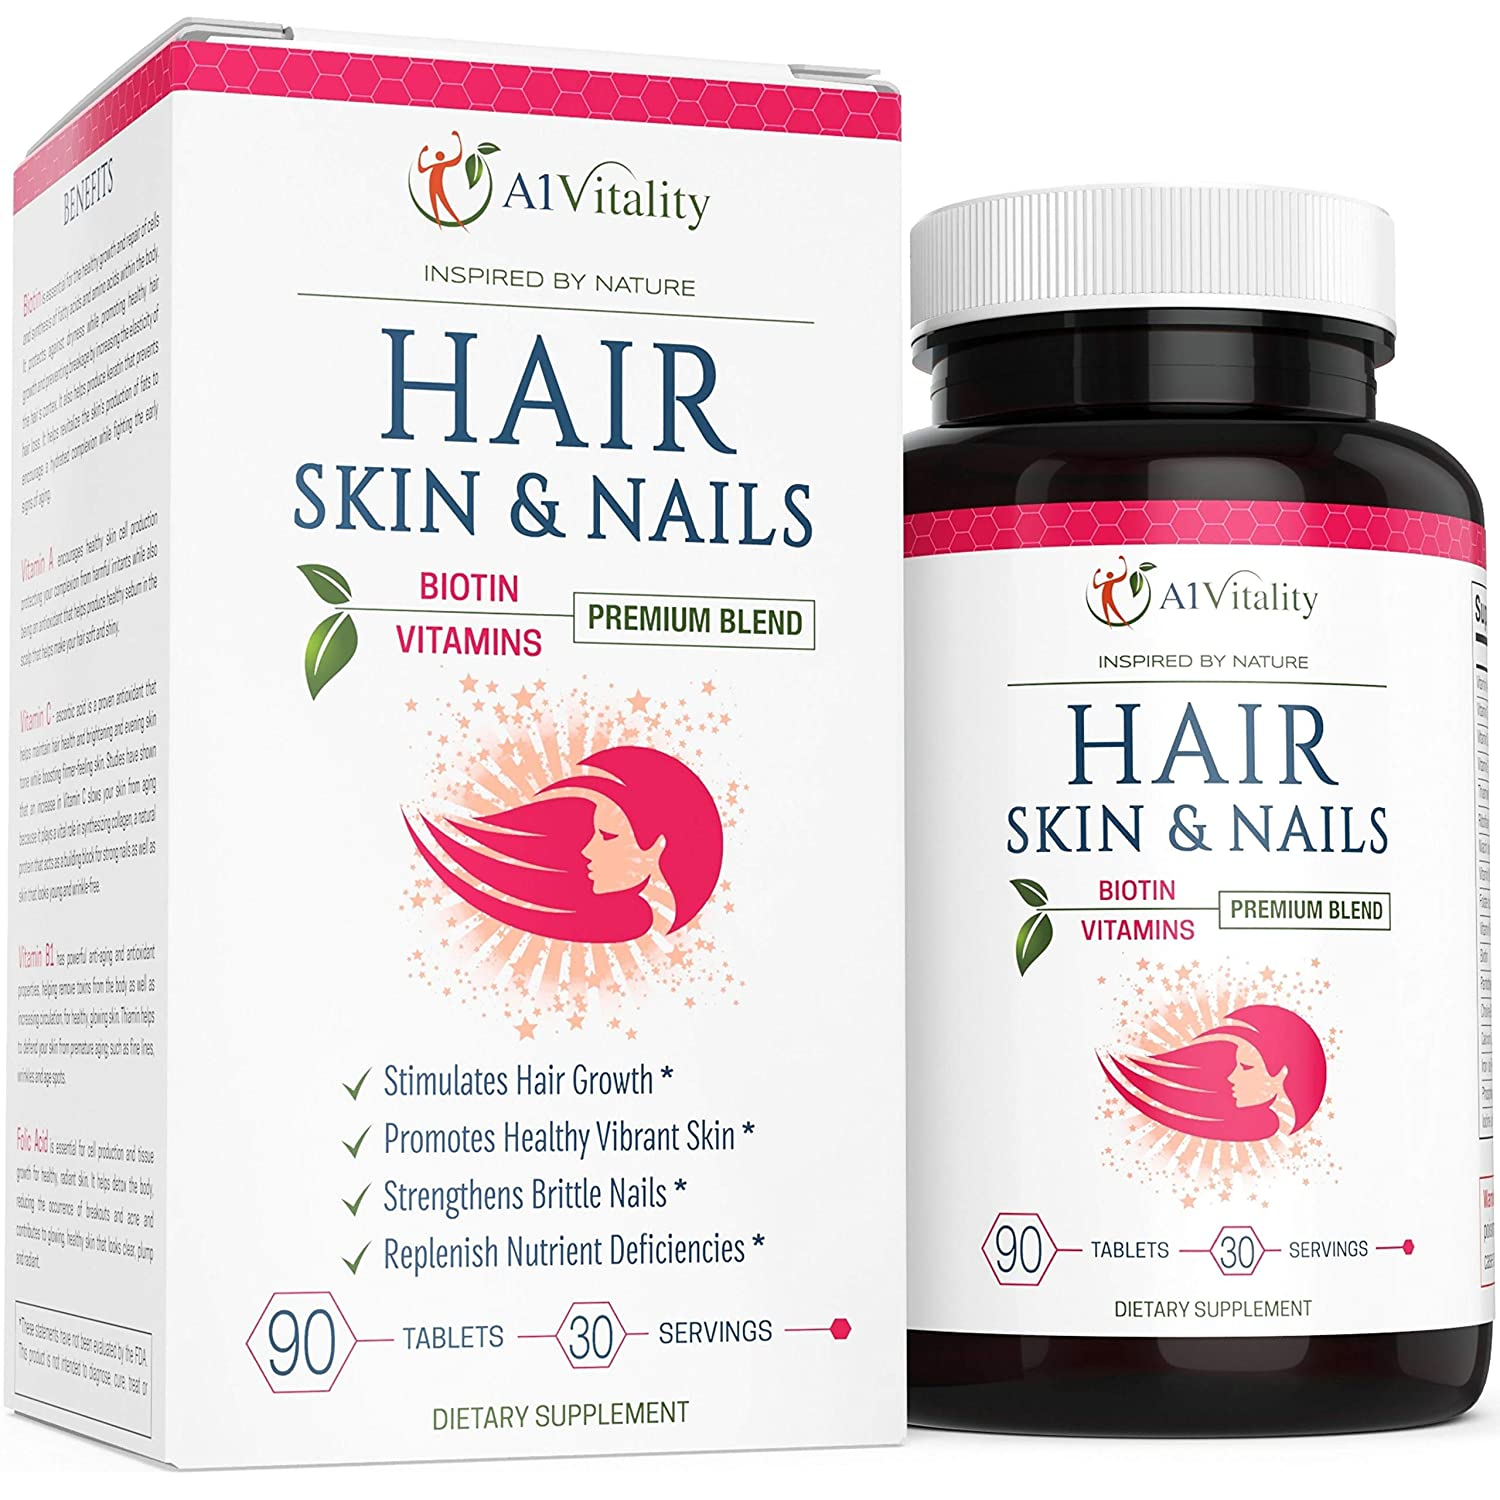 Hair, Skin, Nails Vitamins With Biotin - Hair Growth Formula For Healthy Hair, Powerful Minerals, Nutrients, Amino Acids, Vibrant Glowing Skin Care, Stronger Longer Nails, Premium Blend Extra Strength